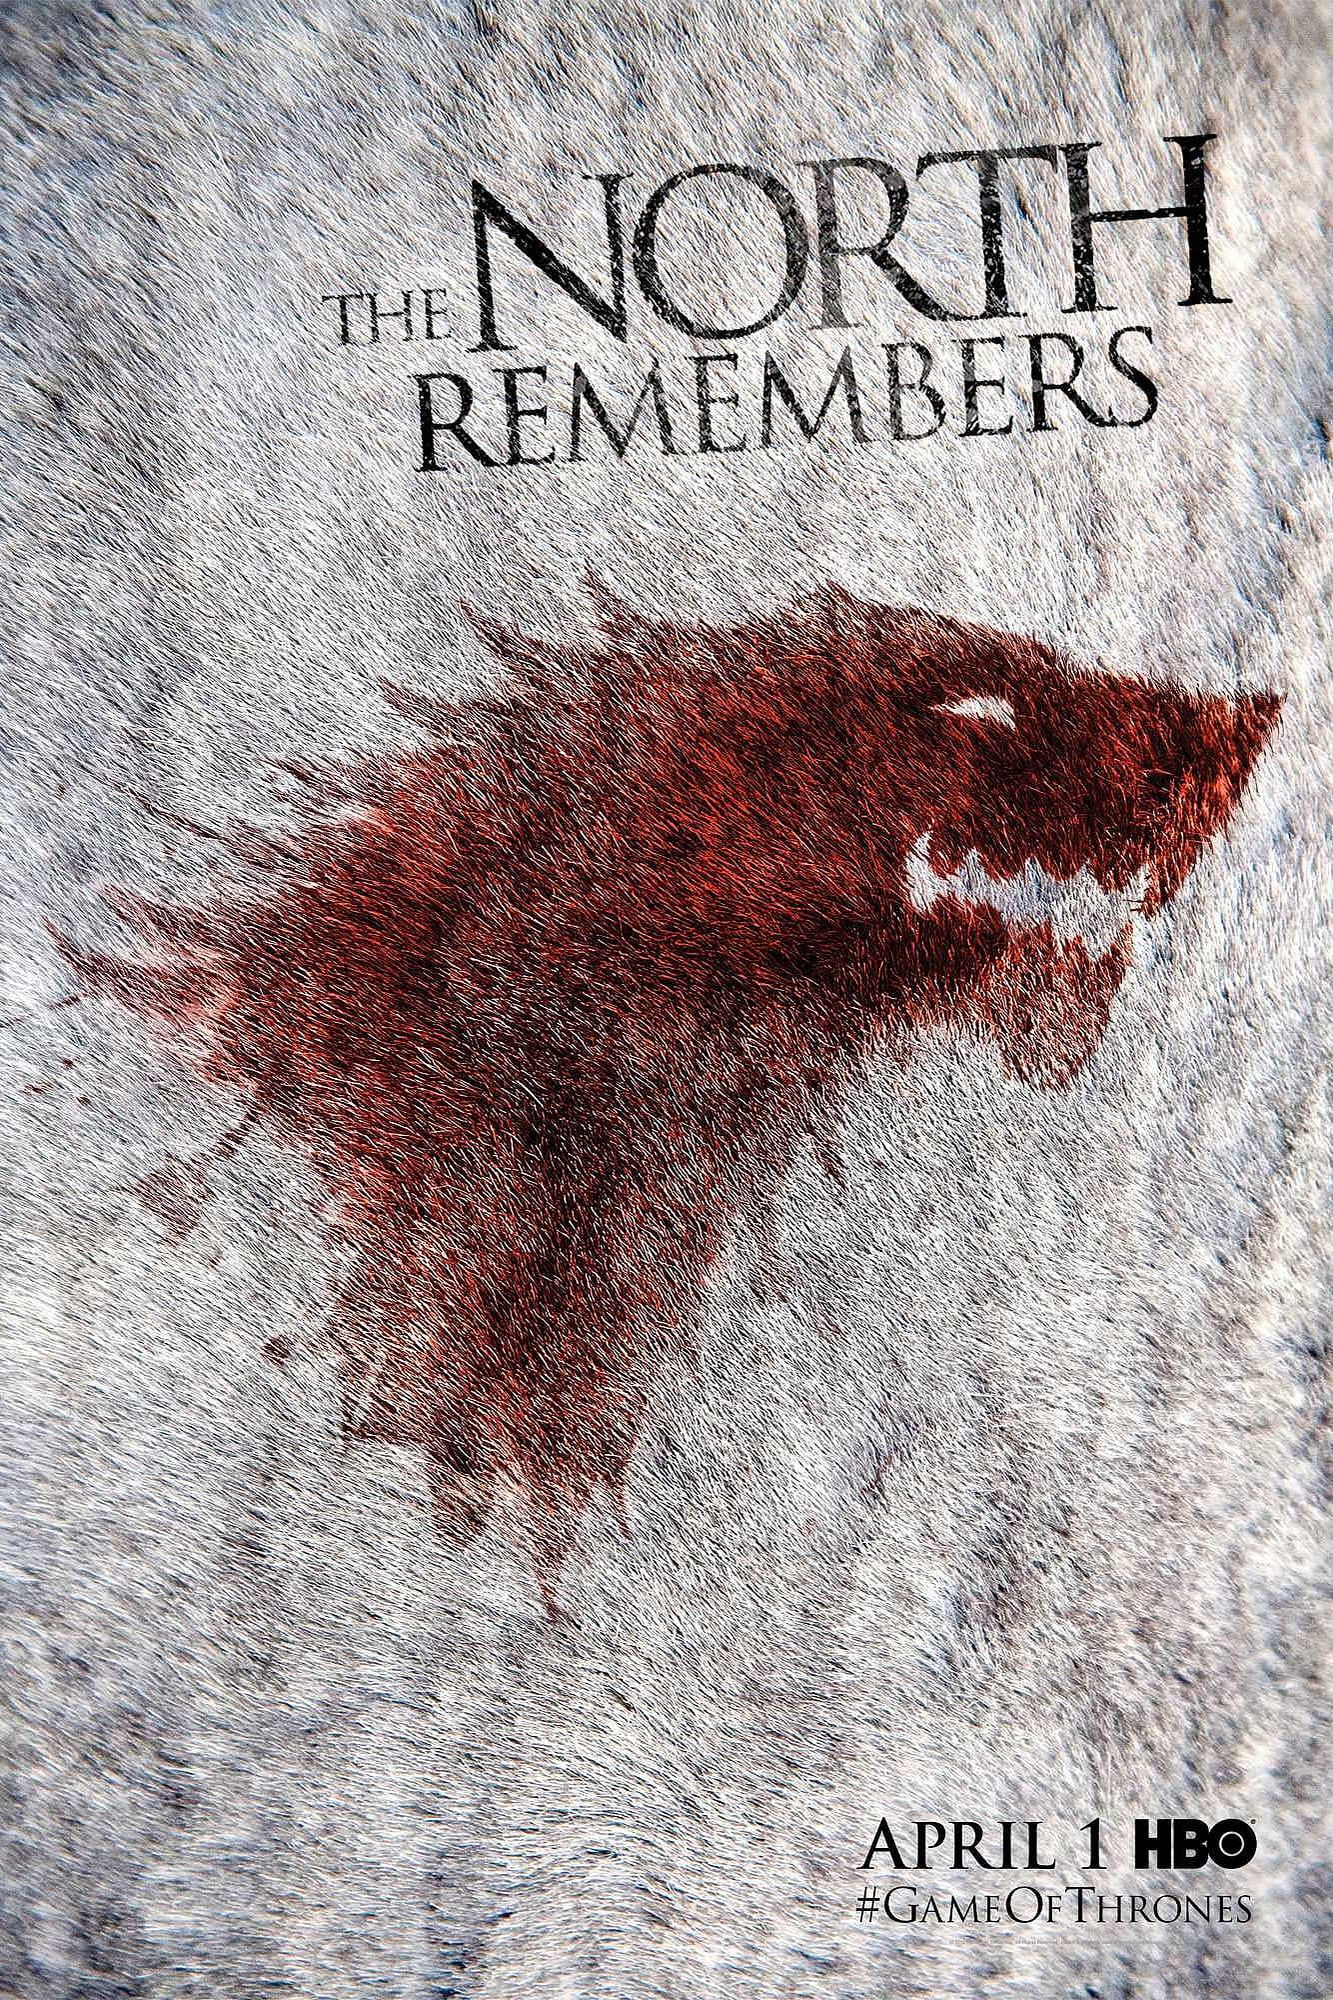 Game Of Thrones Poster High Quality Hd Printable Wallpapers Season Season 2 North Remembers Firs Ver Juego De Tronos Juego De Tronos Juego De Tronos Wallpapers